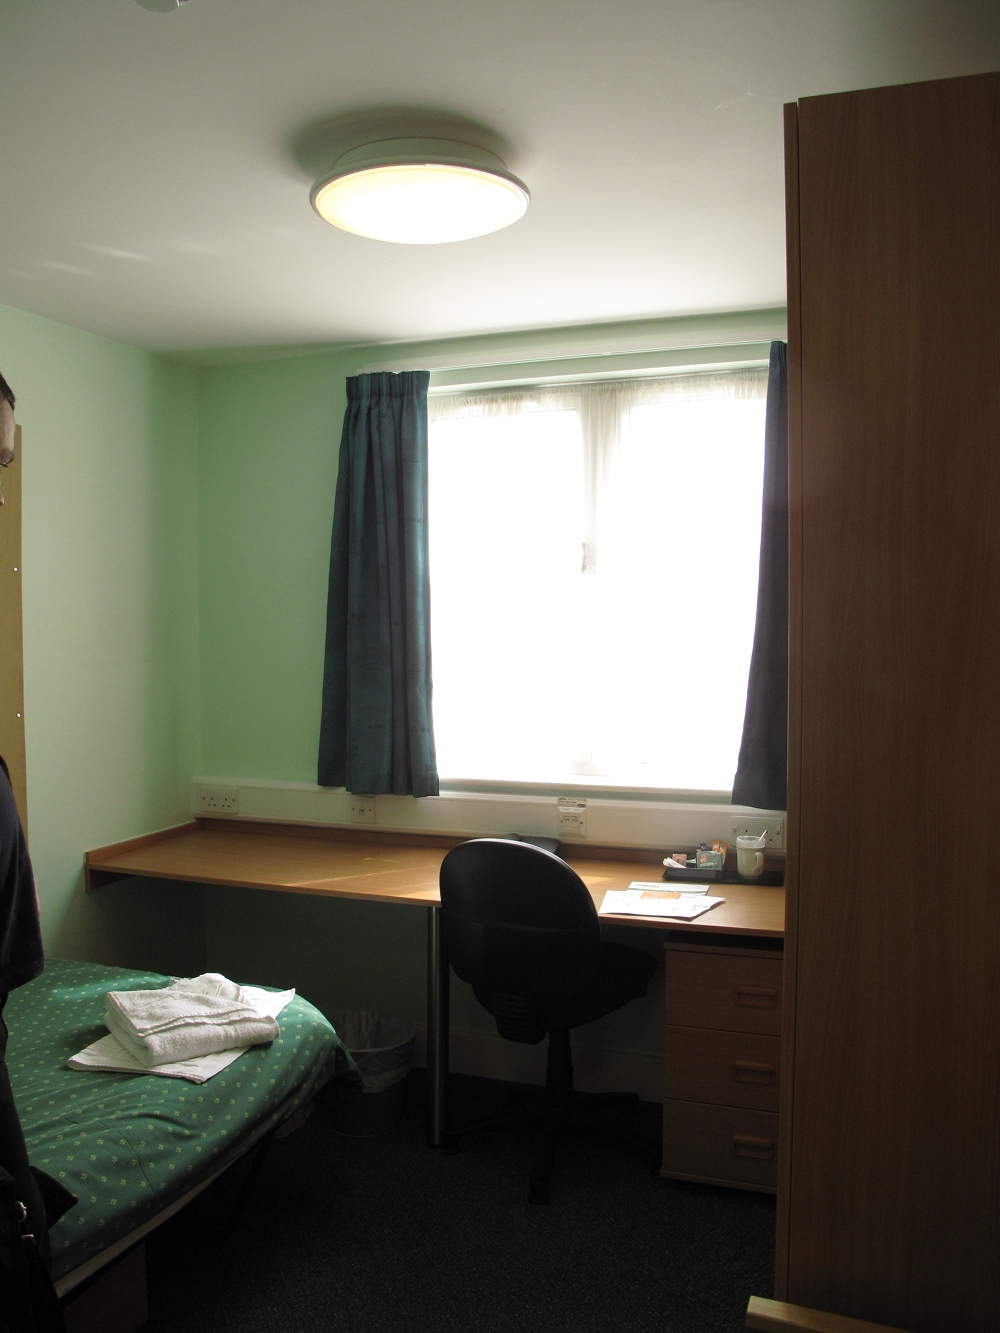 Rooms Available For Rent In Nj